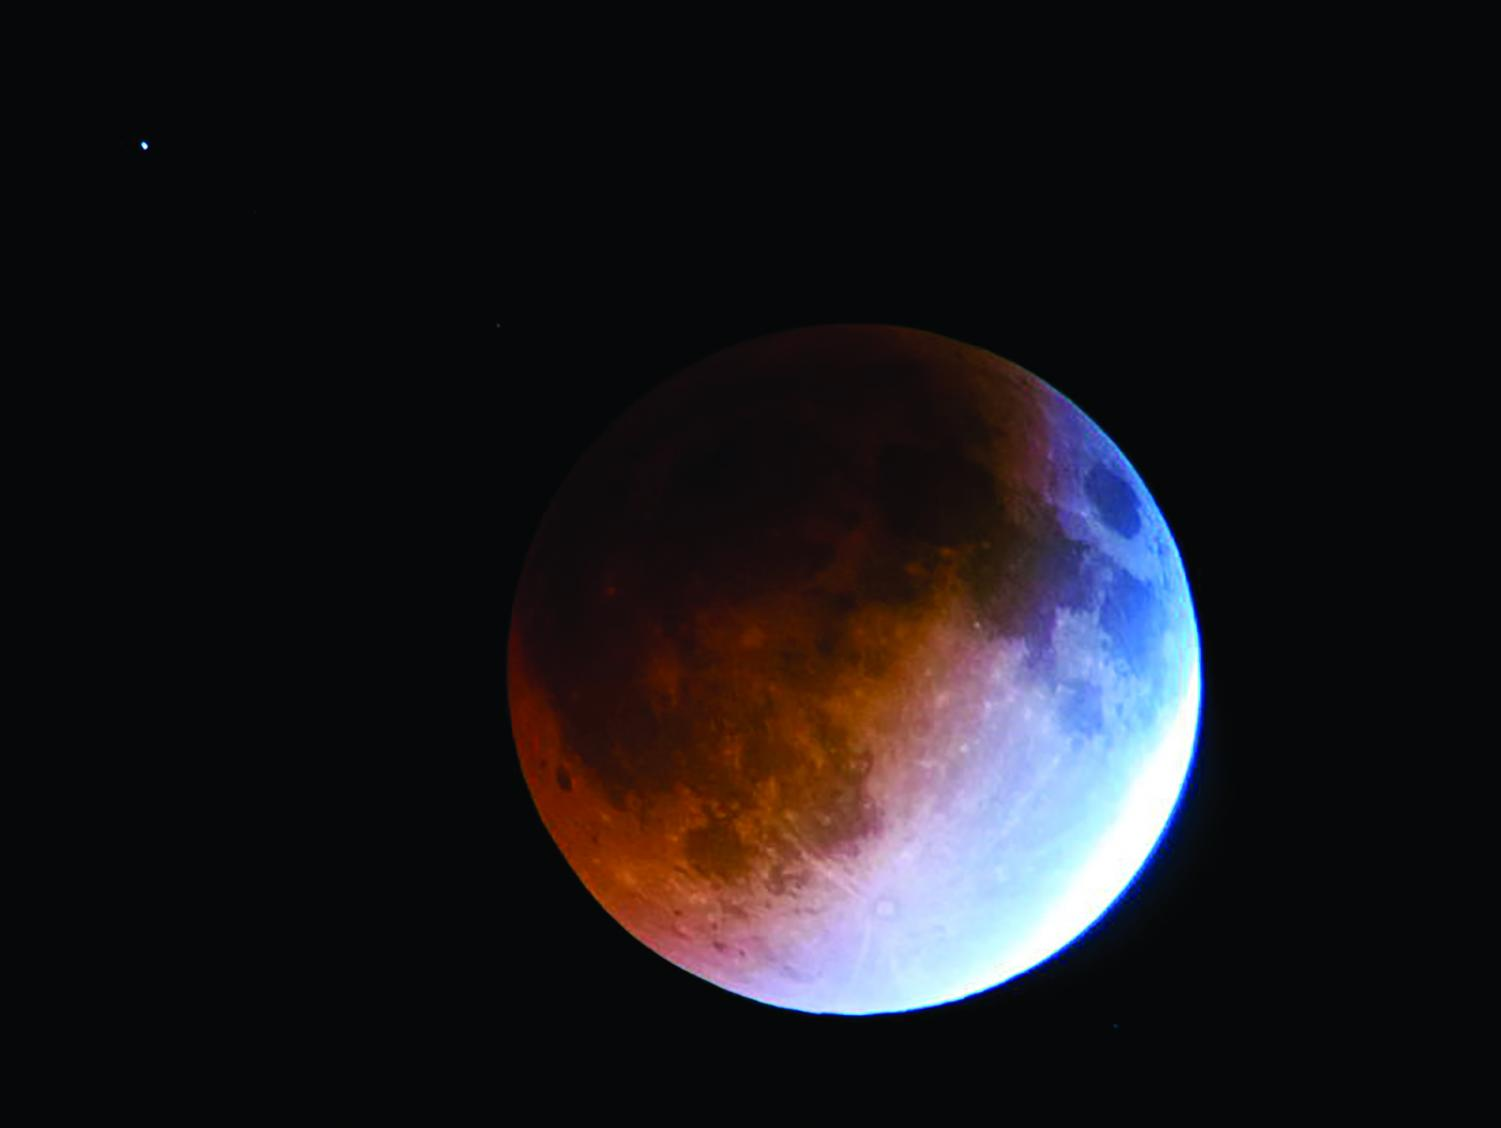 Catch the Super Blue Blood Moon on Jan. 31 for the first time in 150 years.